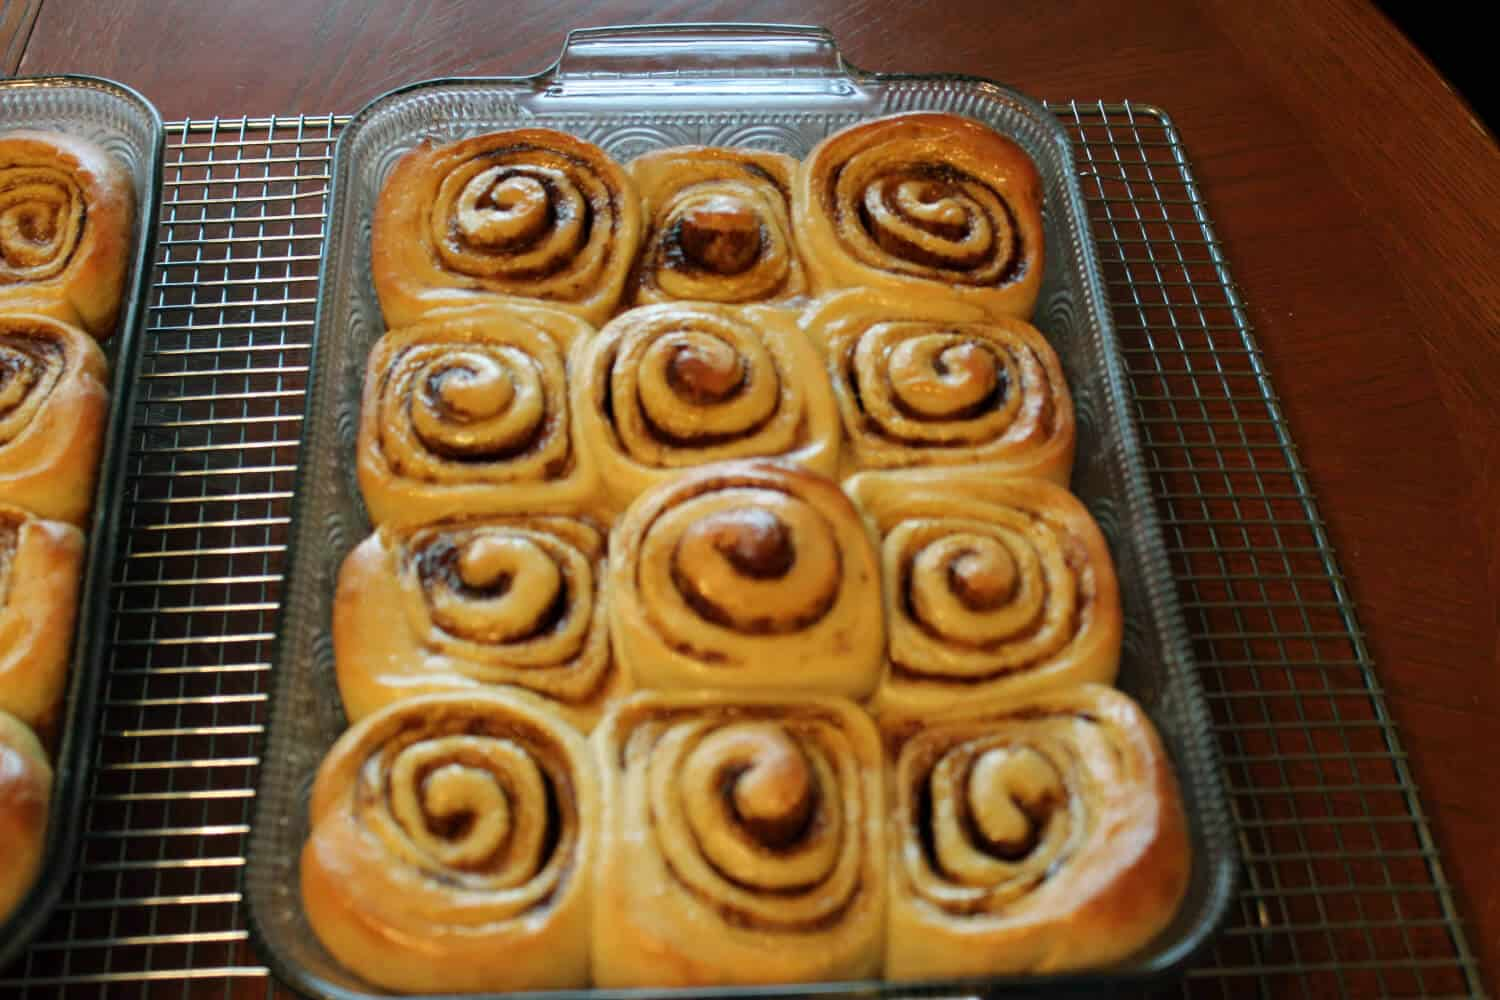 sourdough cinnamon rolls waiting for icing